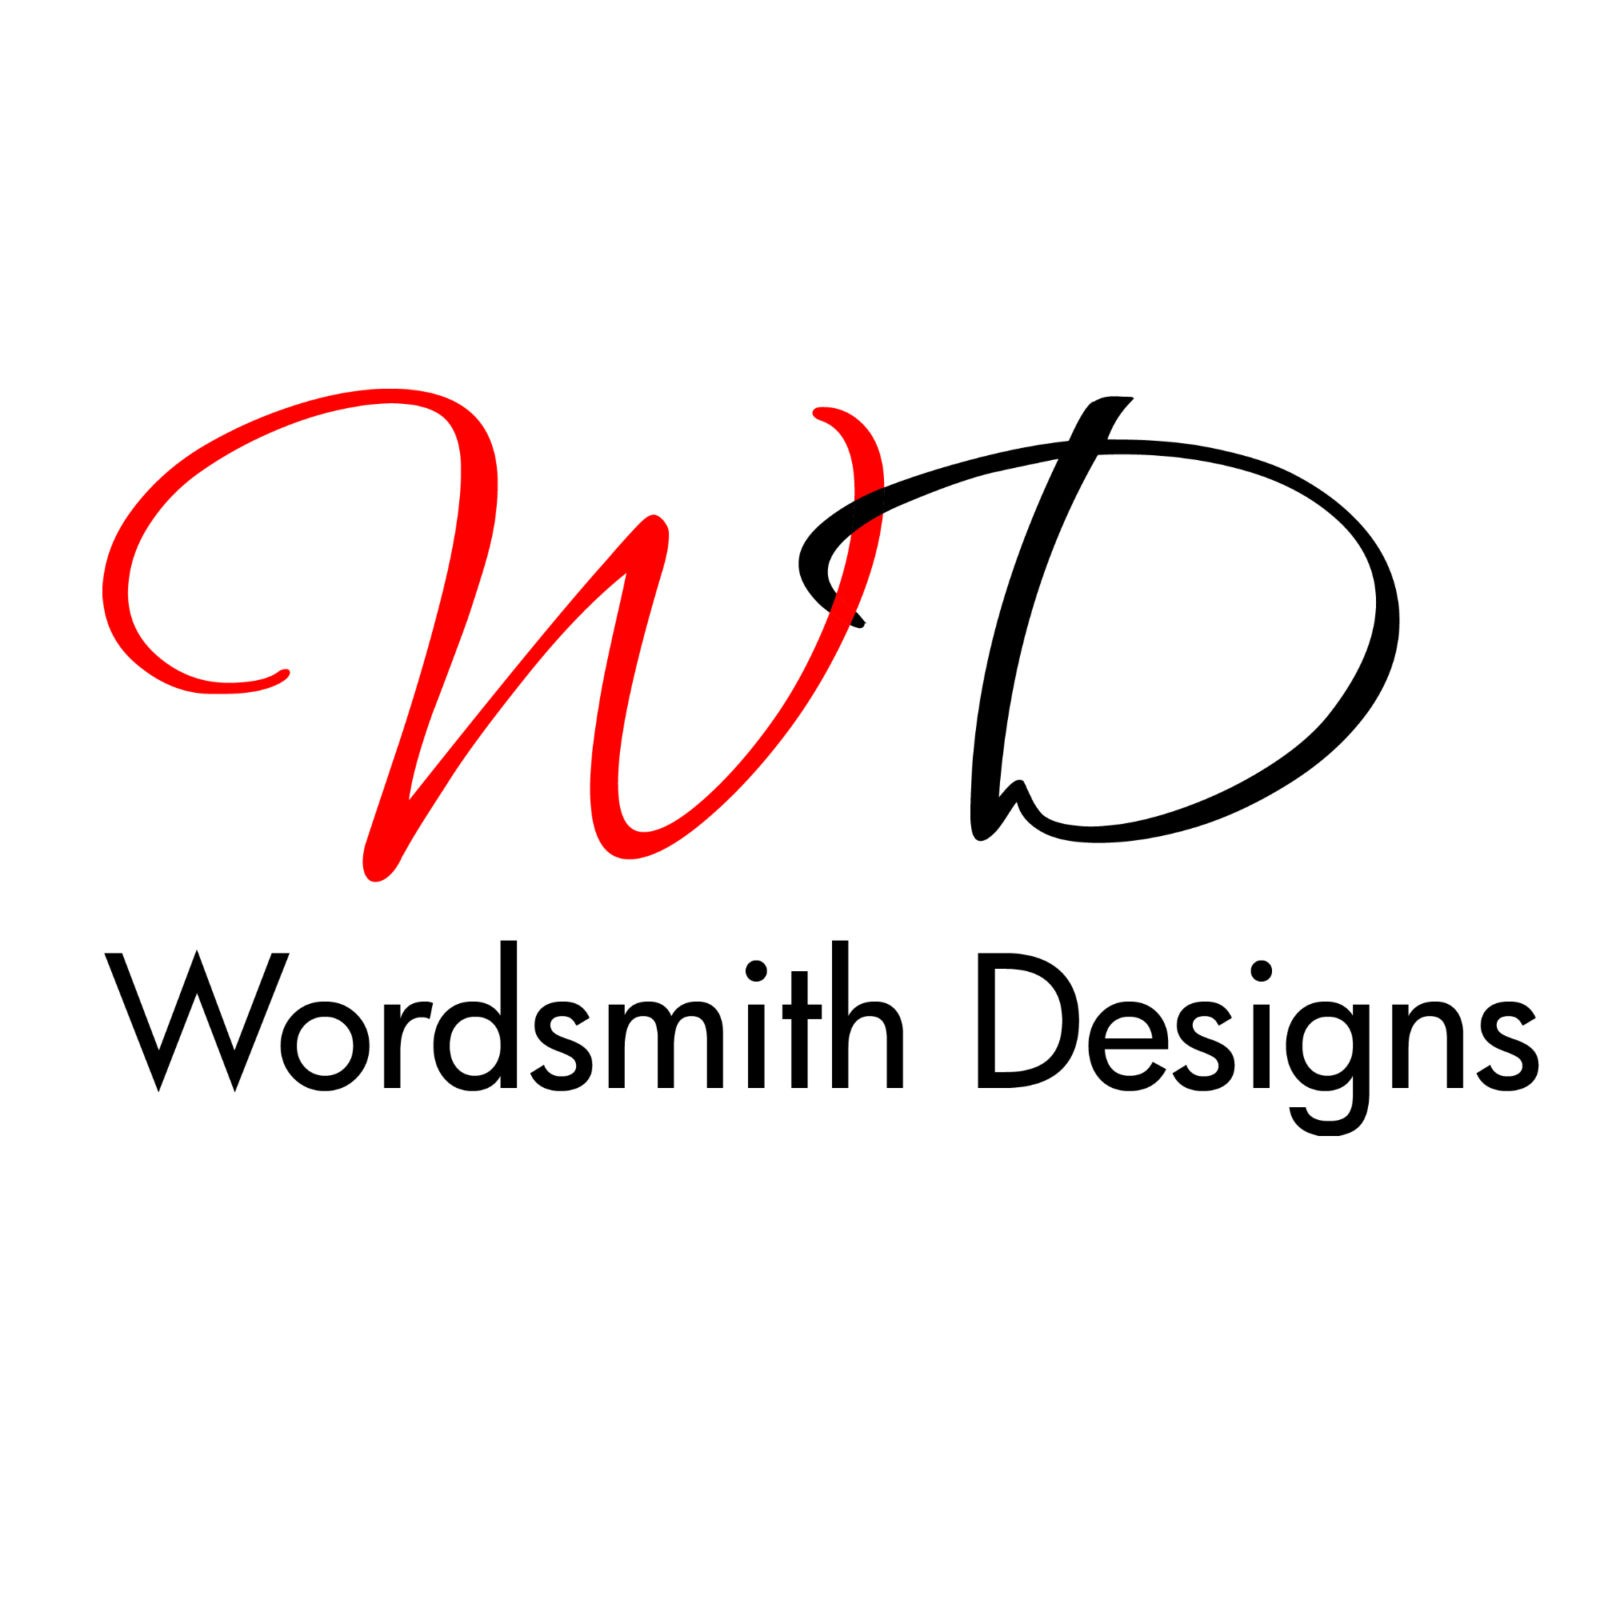 Wordsmith Designs